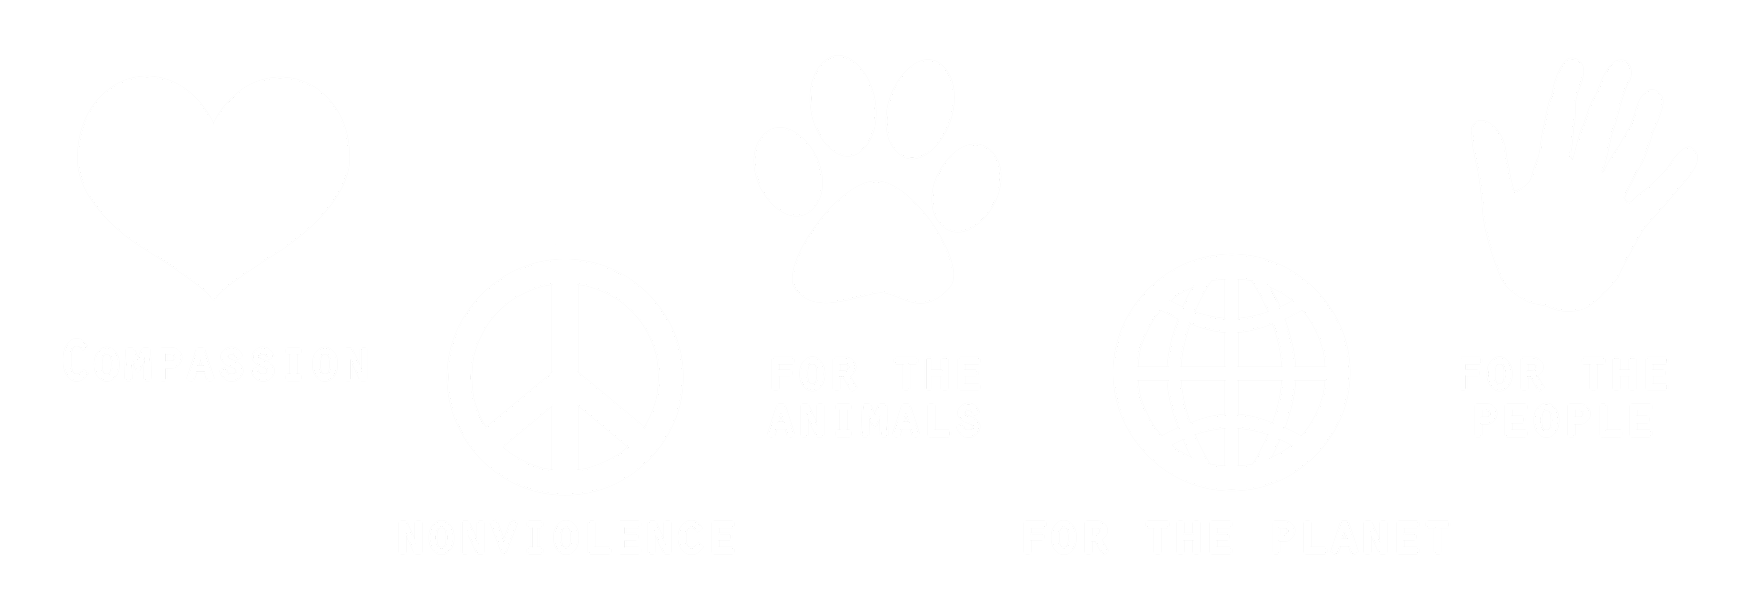 Compassion, Non-violence, For the animals, For the planet, For the people